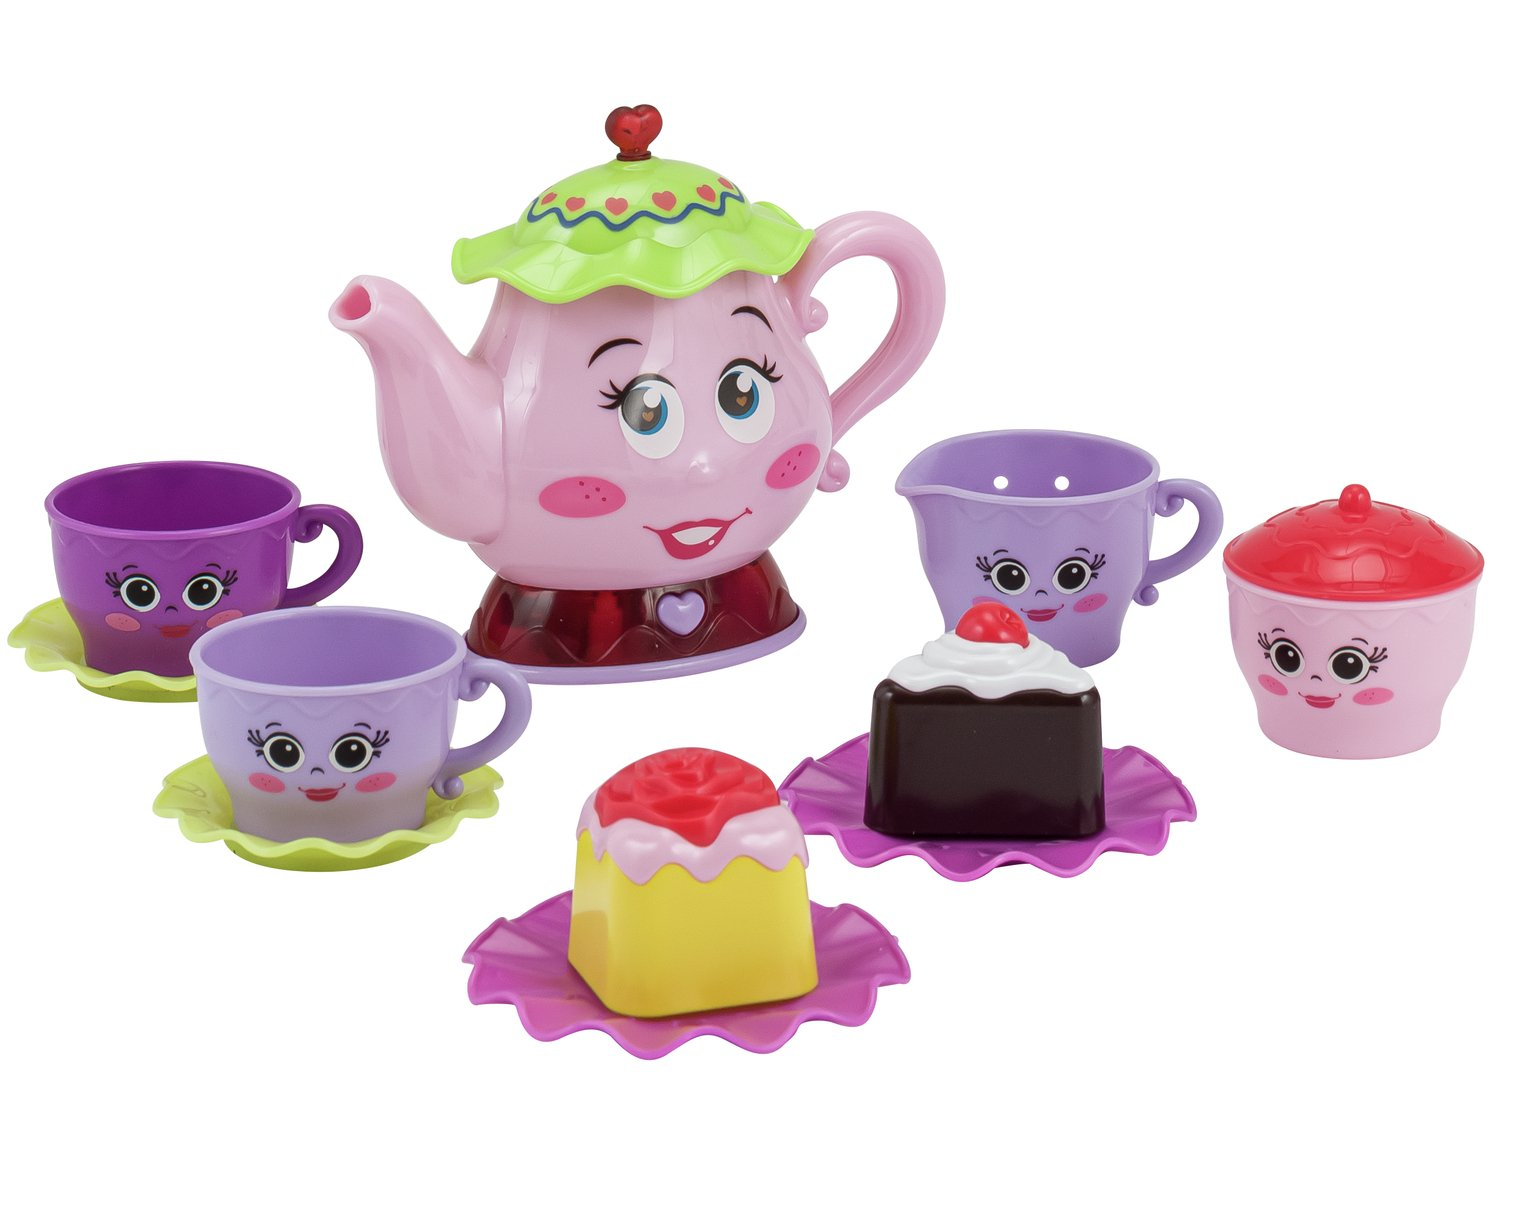 chad valley pink tea party set cooking role play   argos  rh   argos co uk